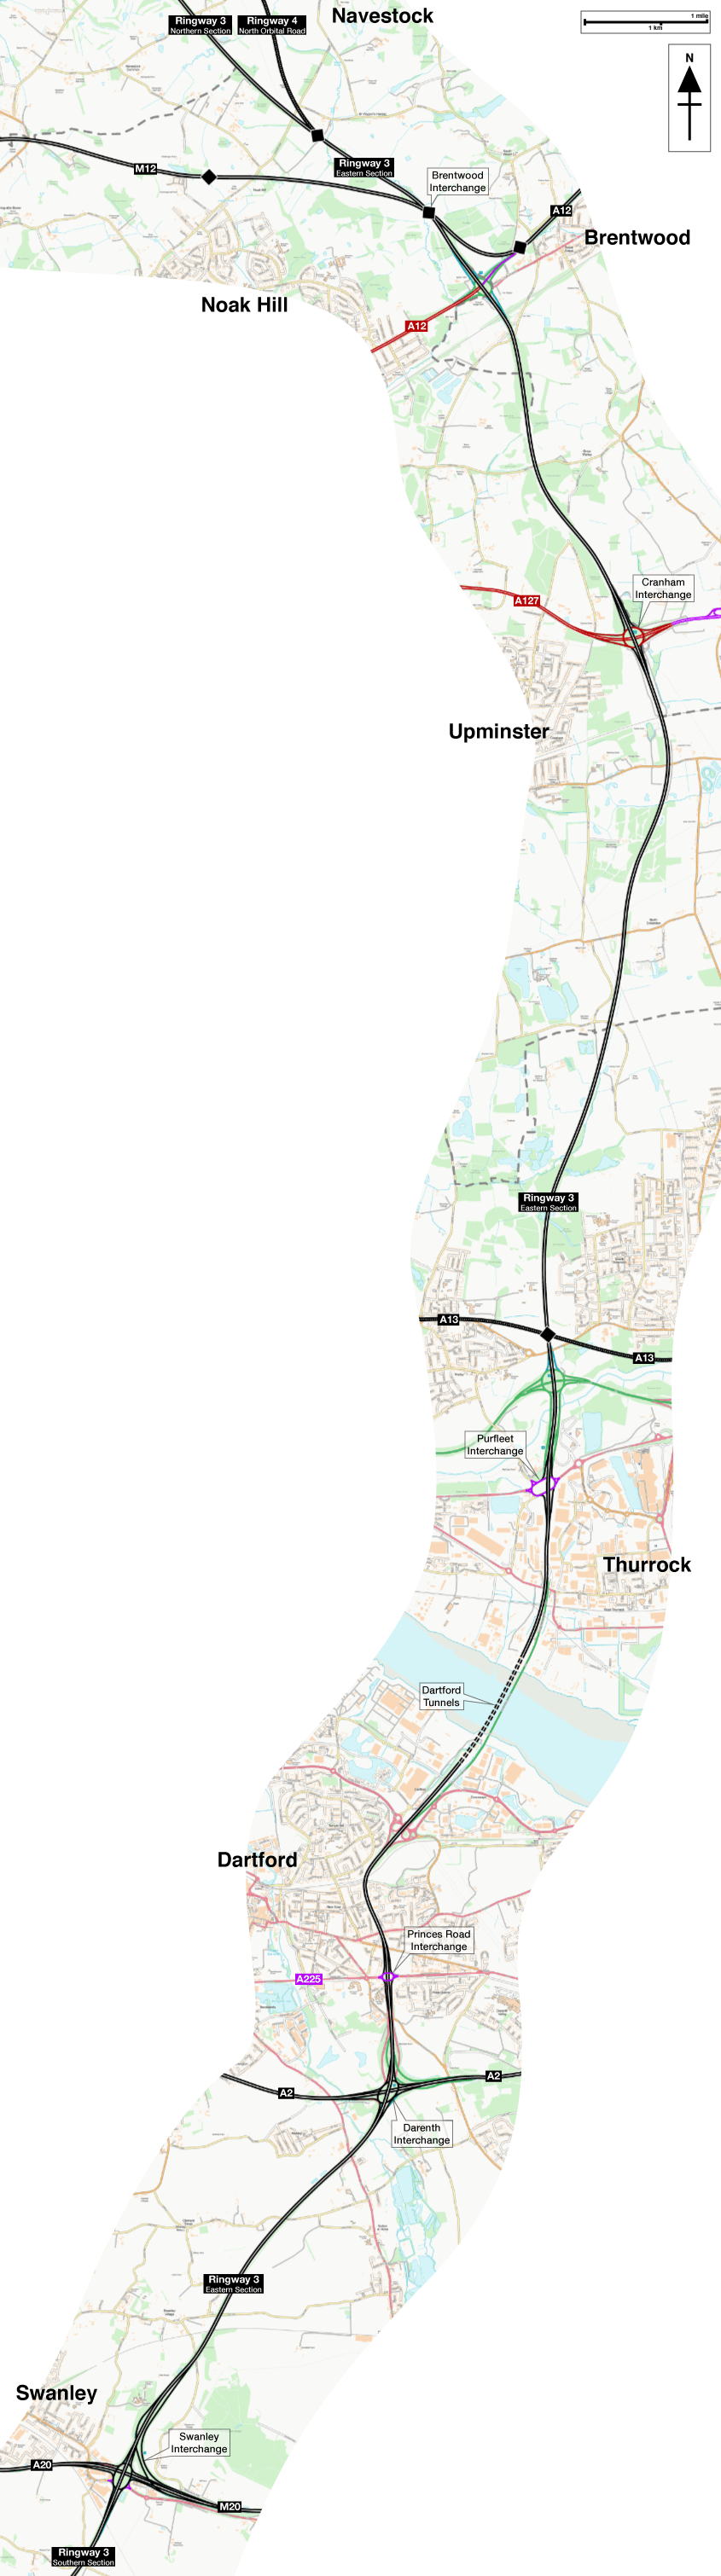 Map of Ringway 3 Eastern Section